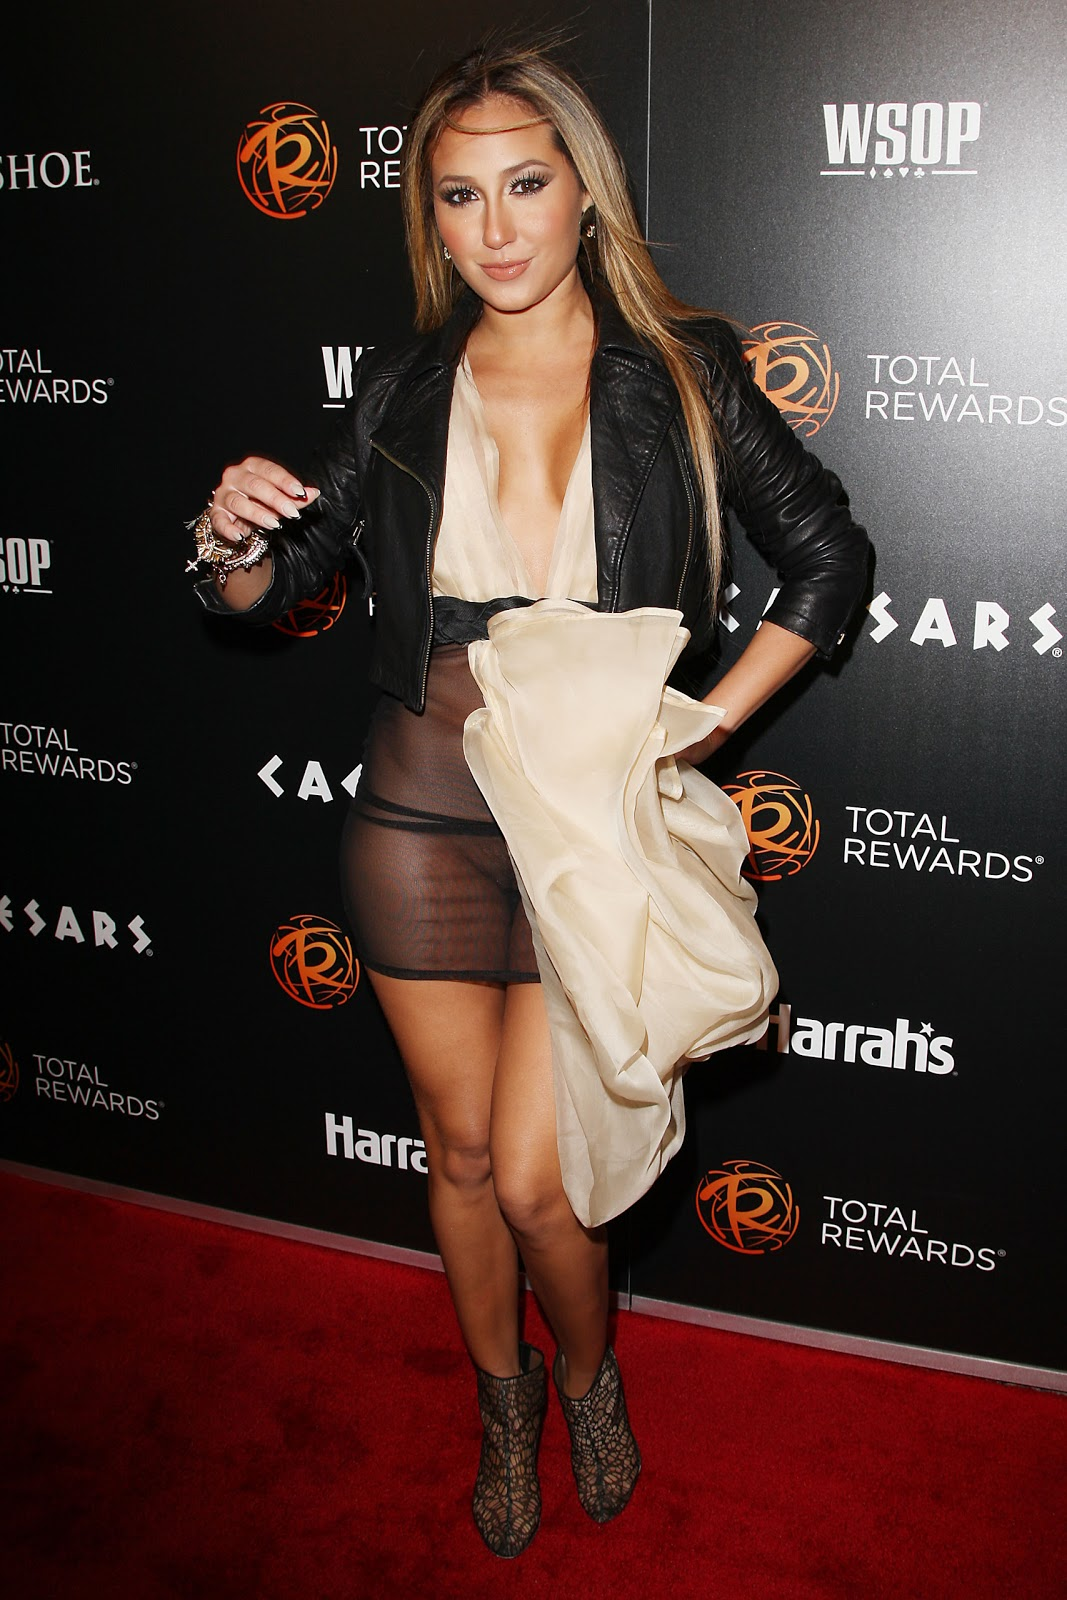 http://1.bp.blogspot.com/-NjAi-KSLxT8/T1sBBj_pNxI/AAAAAAAAEOI/jL9PTXfOQ30/s1600/Adrienne+Bailon+Flashing+The+See-Through+Dress+Pantyless+Pussy+www.GutterUncensored.com+001.JPG